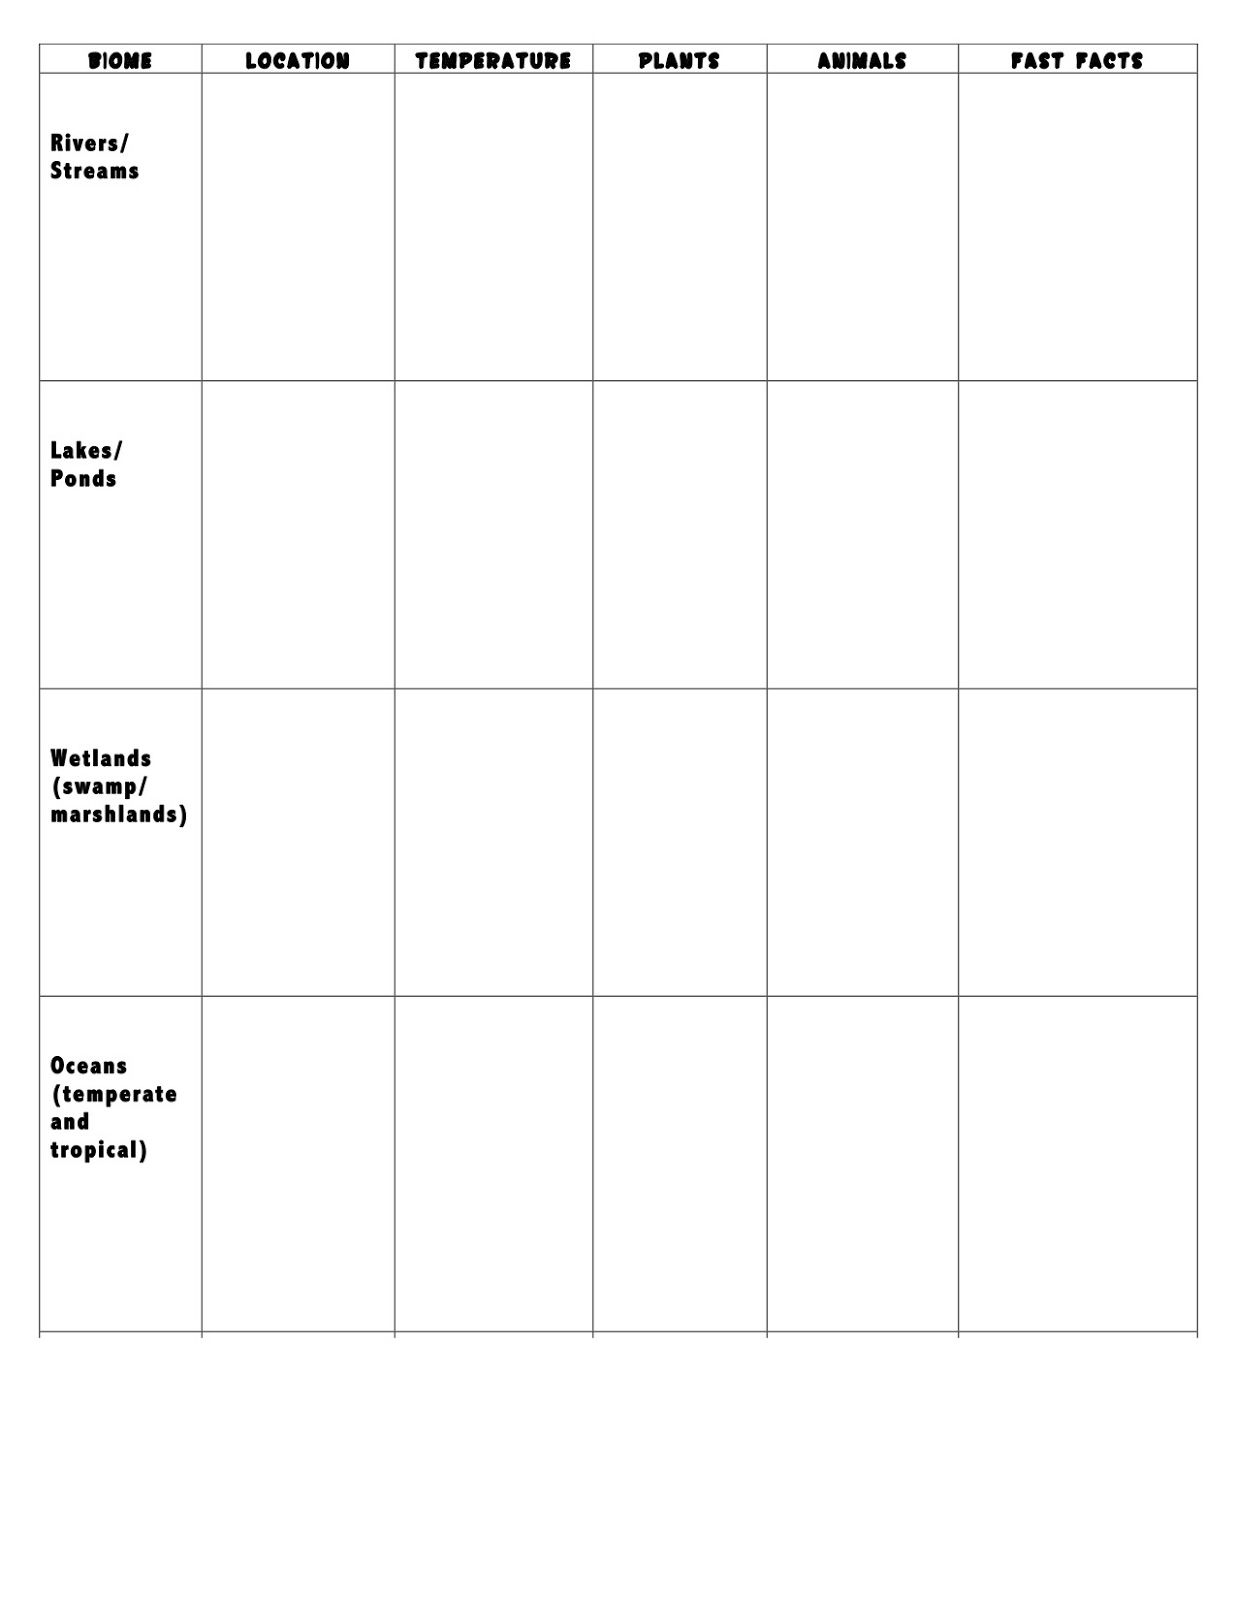 worksheet Biome Webquest Worksheet ecosystemhabitatbiome webquest freebie biomes and teacher freebie